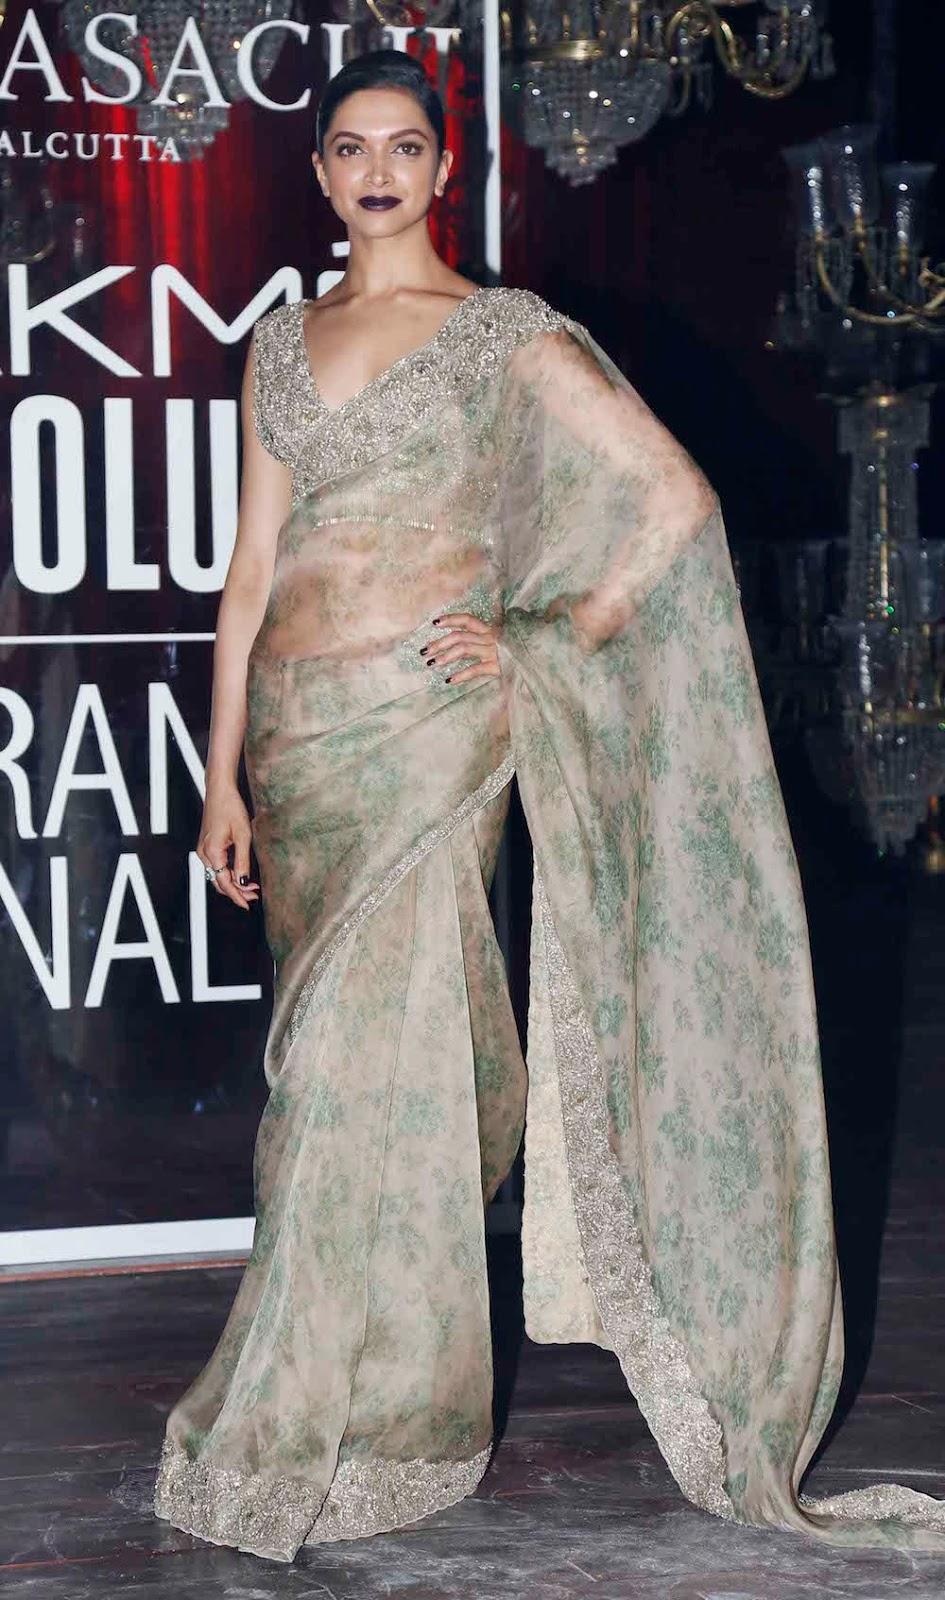 40 Best Images Of Deepika Padukone In Saree || Deepika Padukone\'s ...